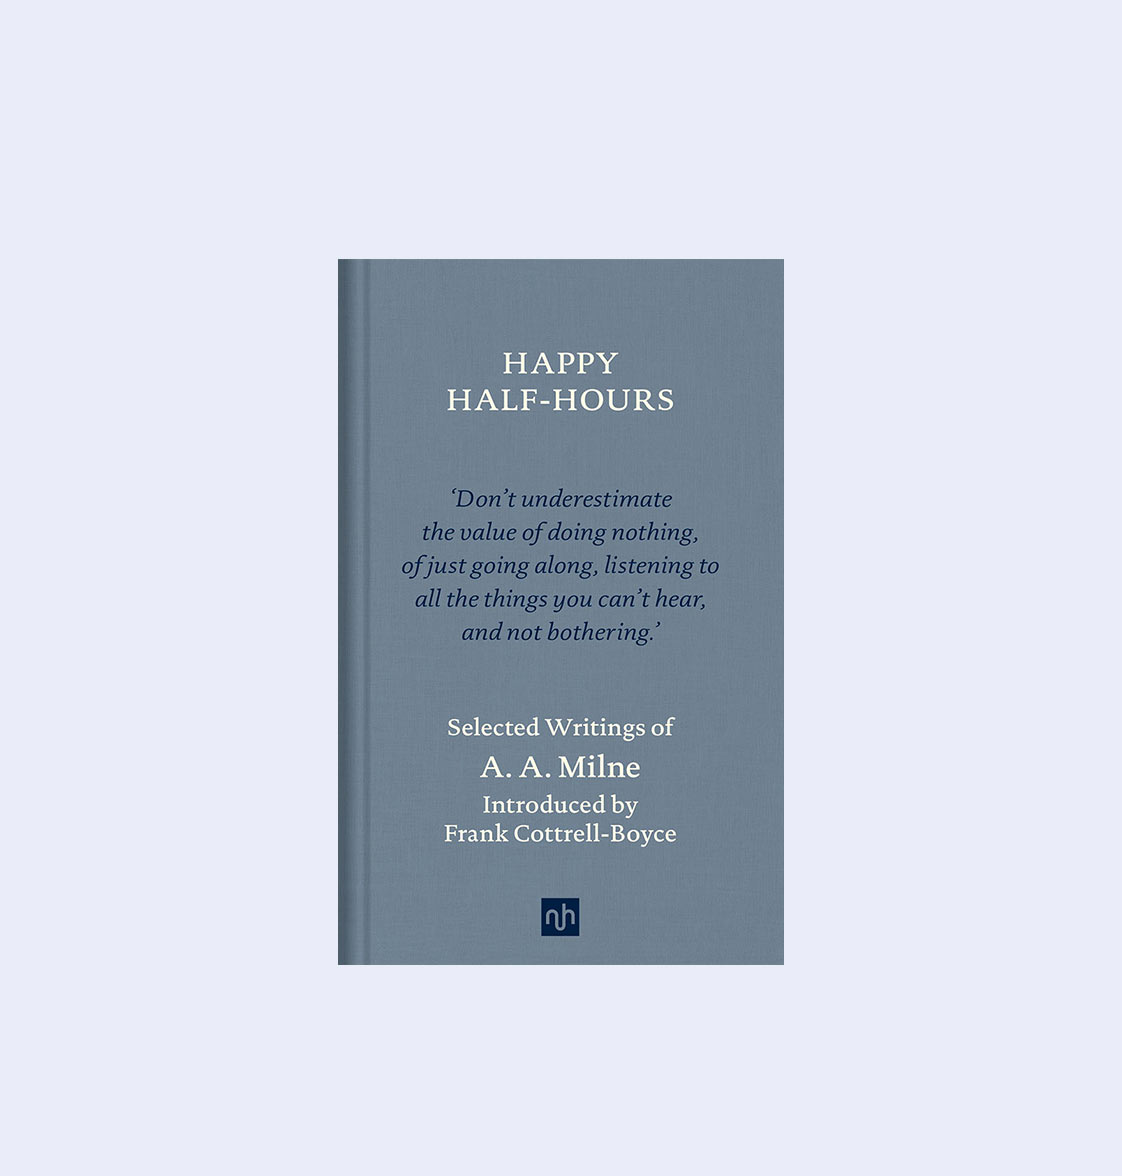 Happy-Half-Hours-Single-Book-Detail